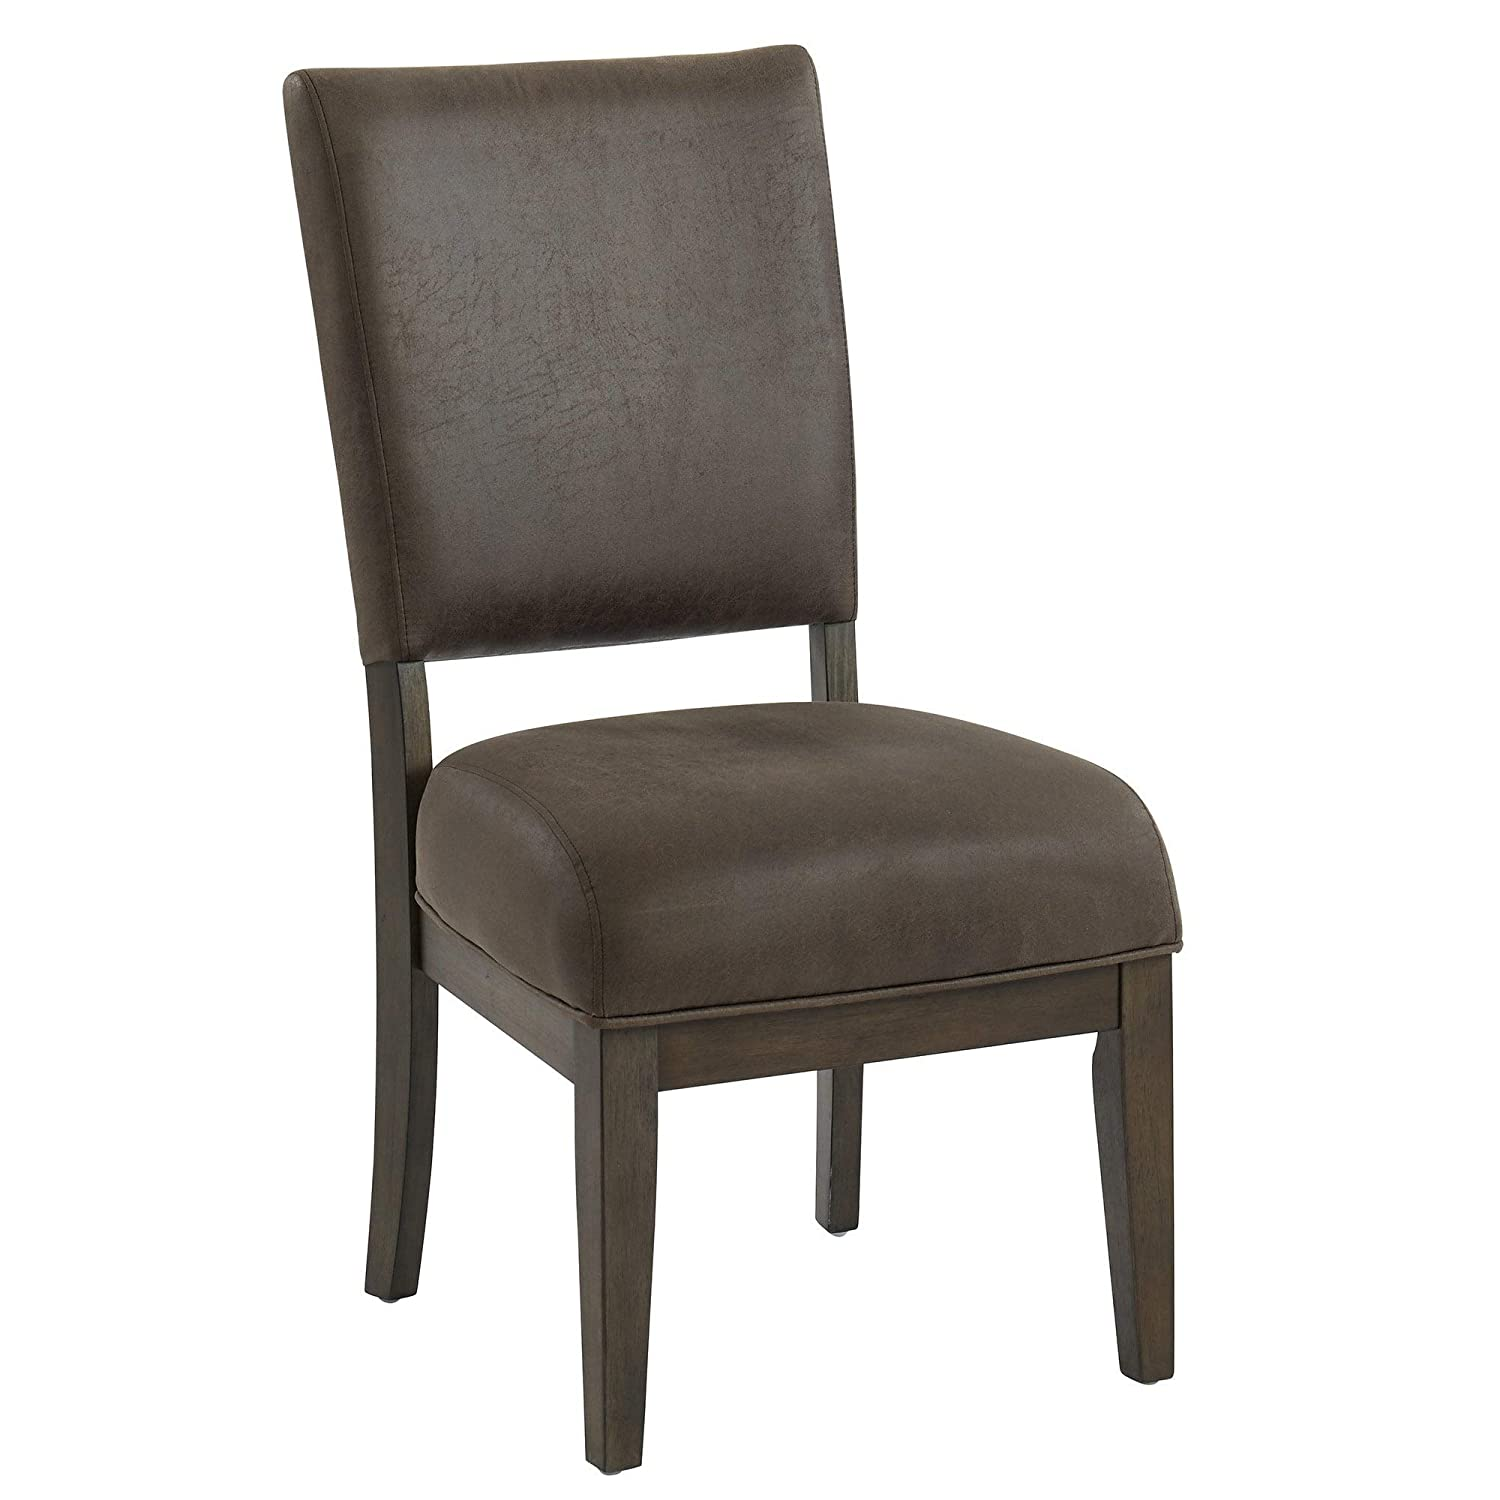 Phenomenal Amazon Com Overstock Solid Wood Faux Leather Side Chair Beatyapartments Chair Design Images Beatyapartmentscom